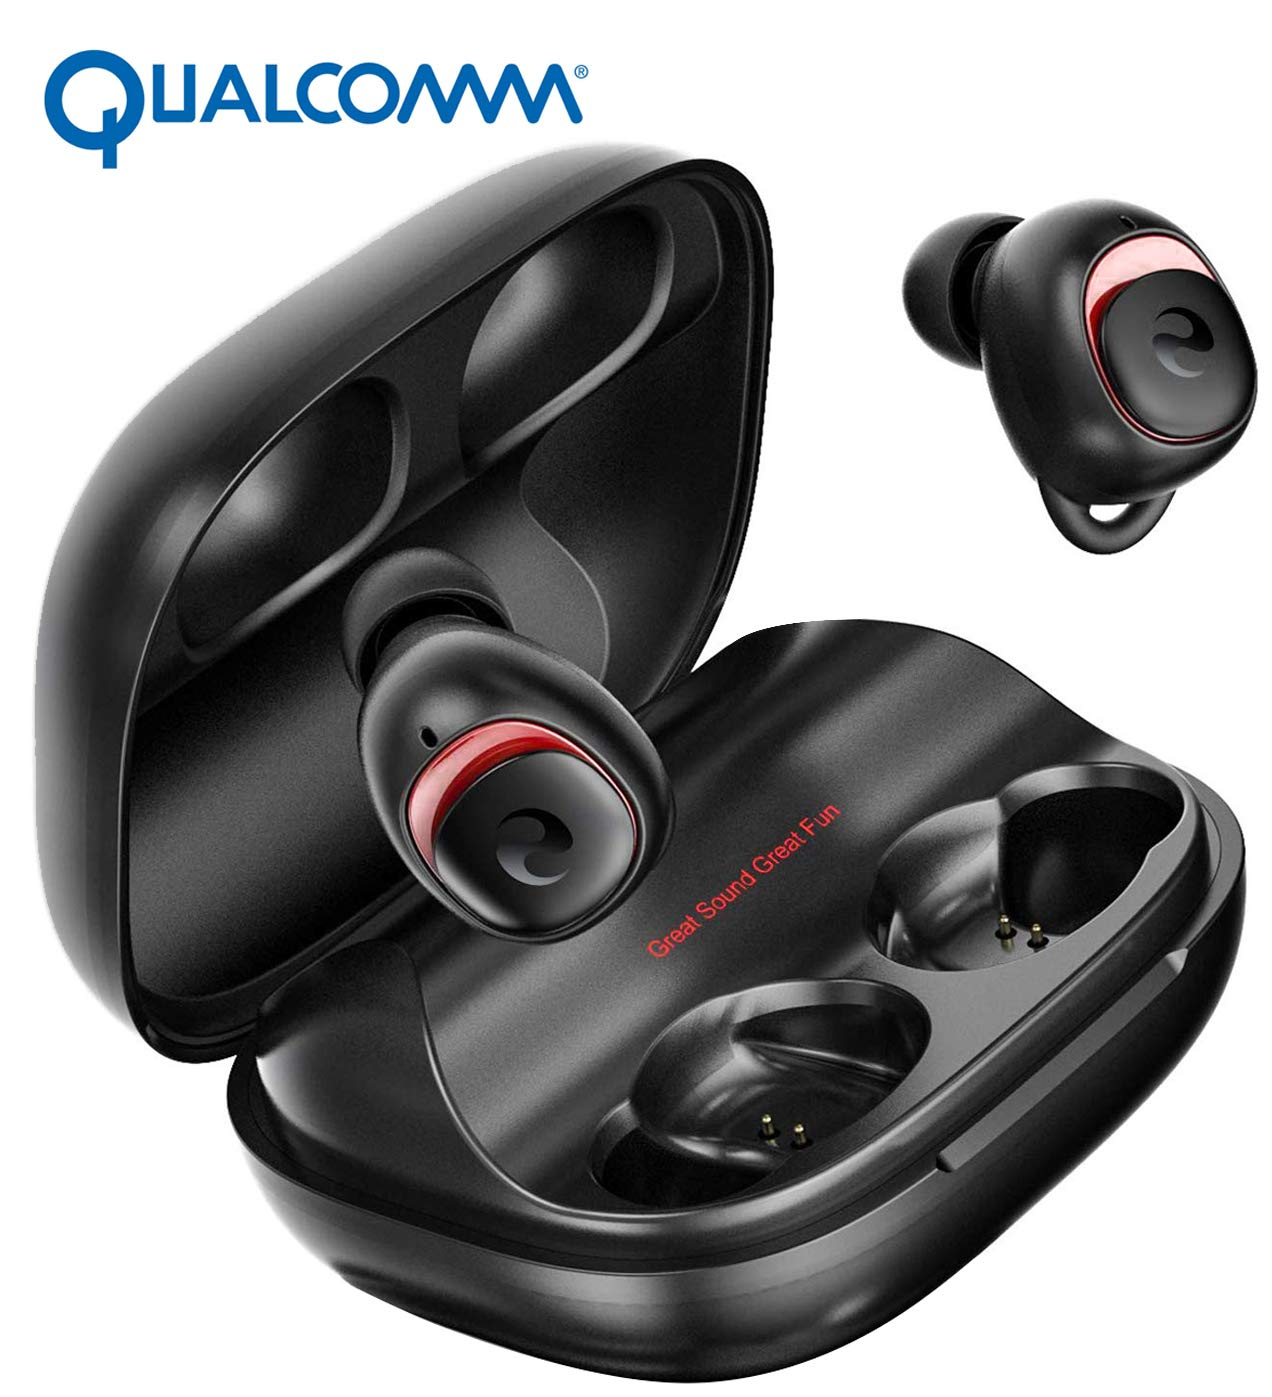 bluetooth-earbuds-wireless-earbuds-bluetooth-earphones-wireless-headphones-ofusho-bluetooth-50-deep-bass-152h-playtime-ipx7-waterproof-tws-stereo-in-ear-headphones-with-charging-case-cvc8